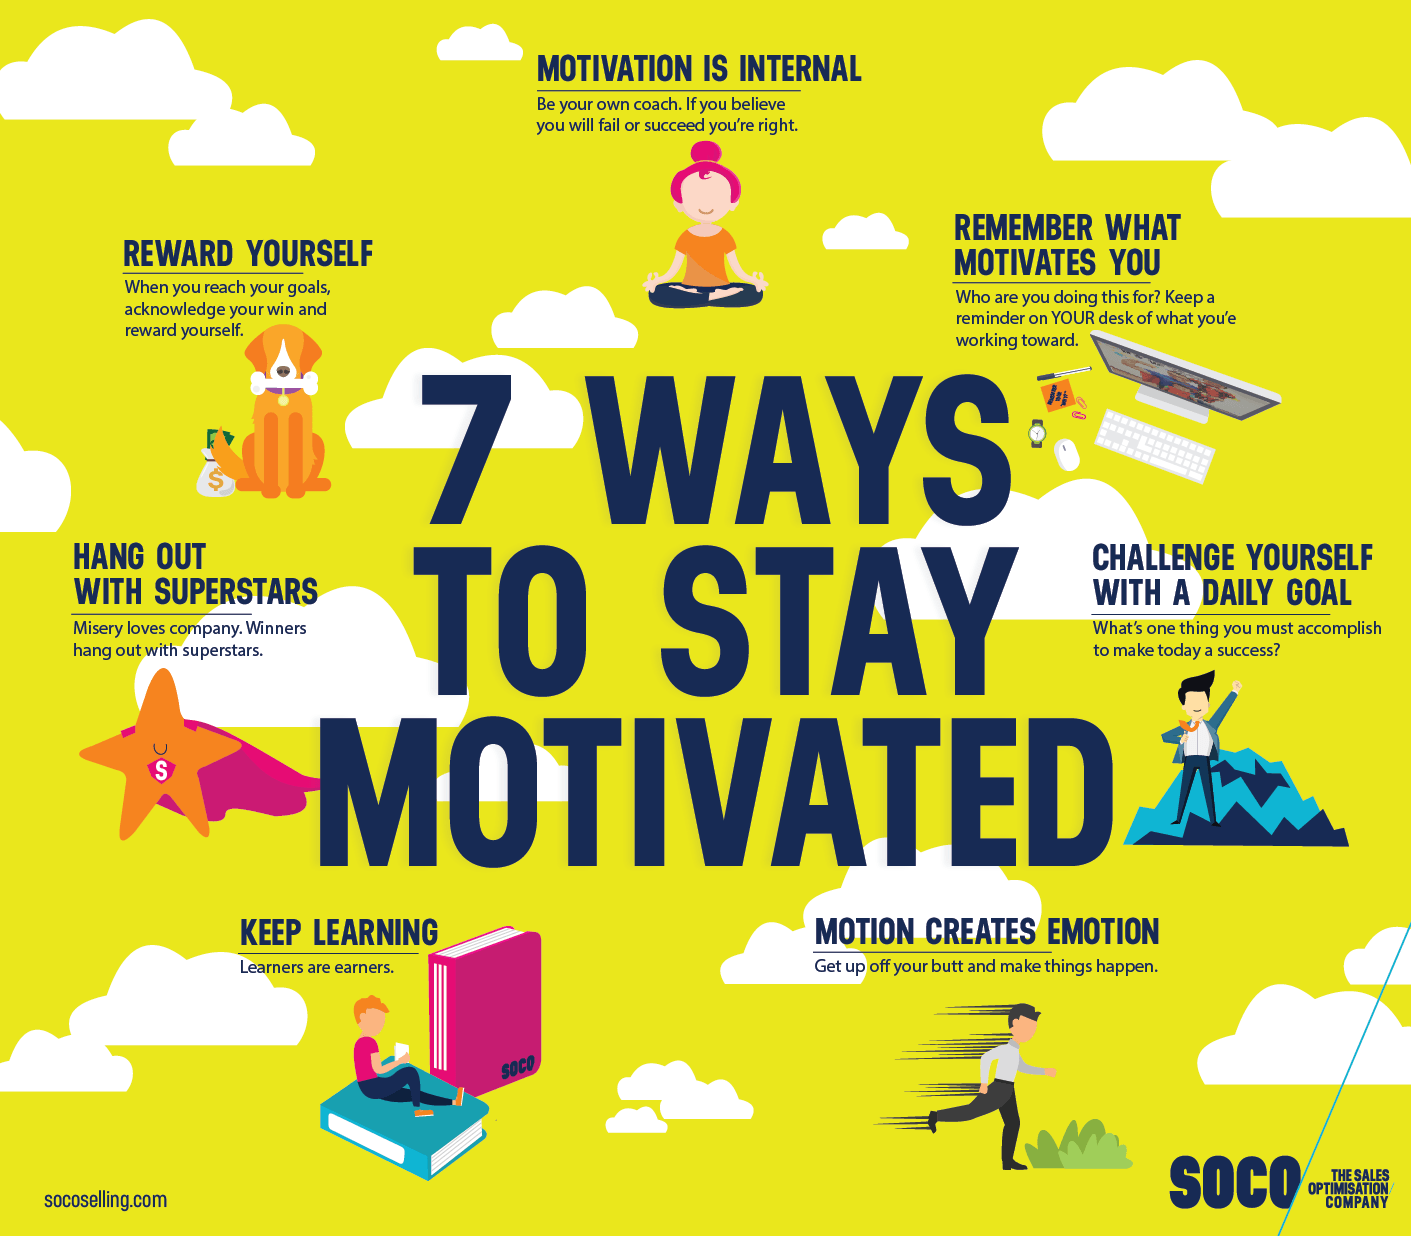 7-Ways-to-Stay-Motivated_v3-01-1